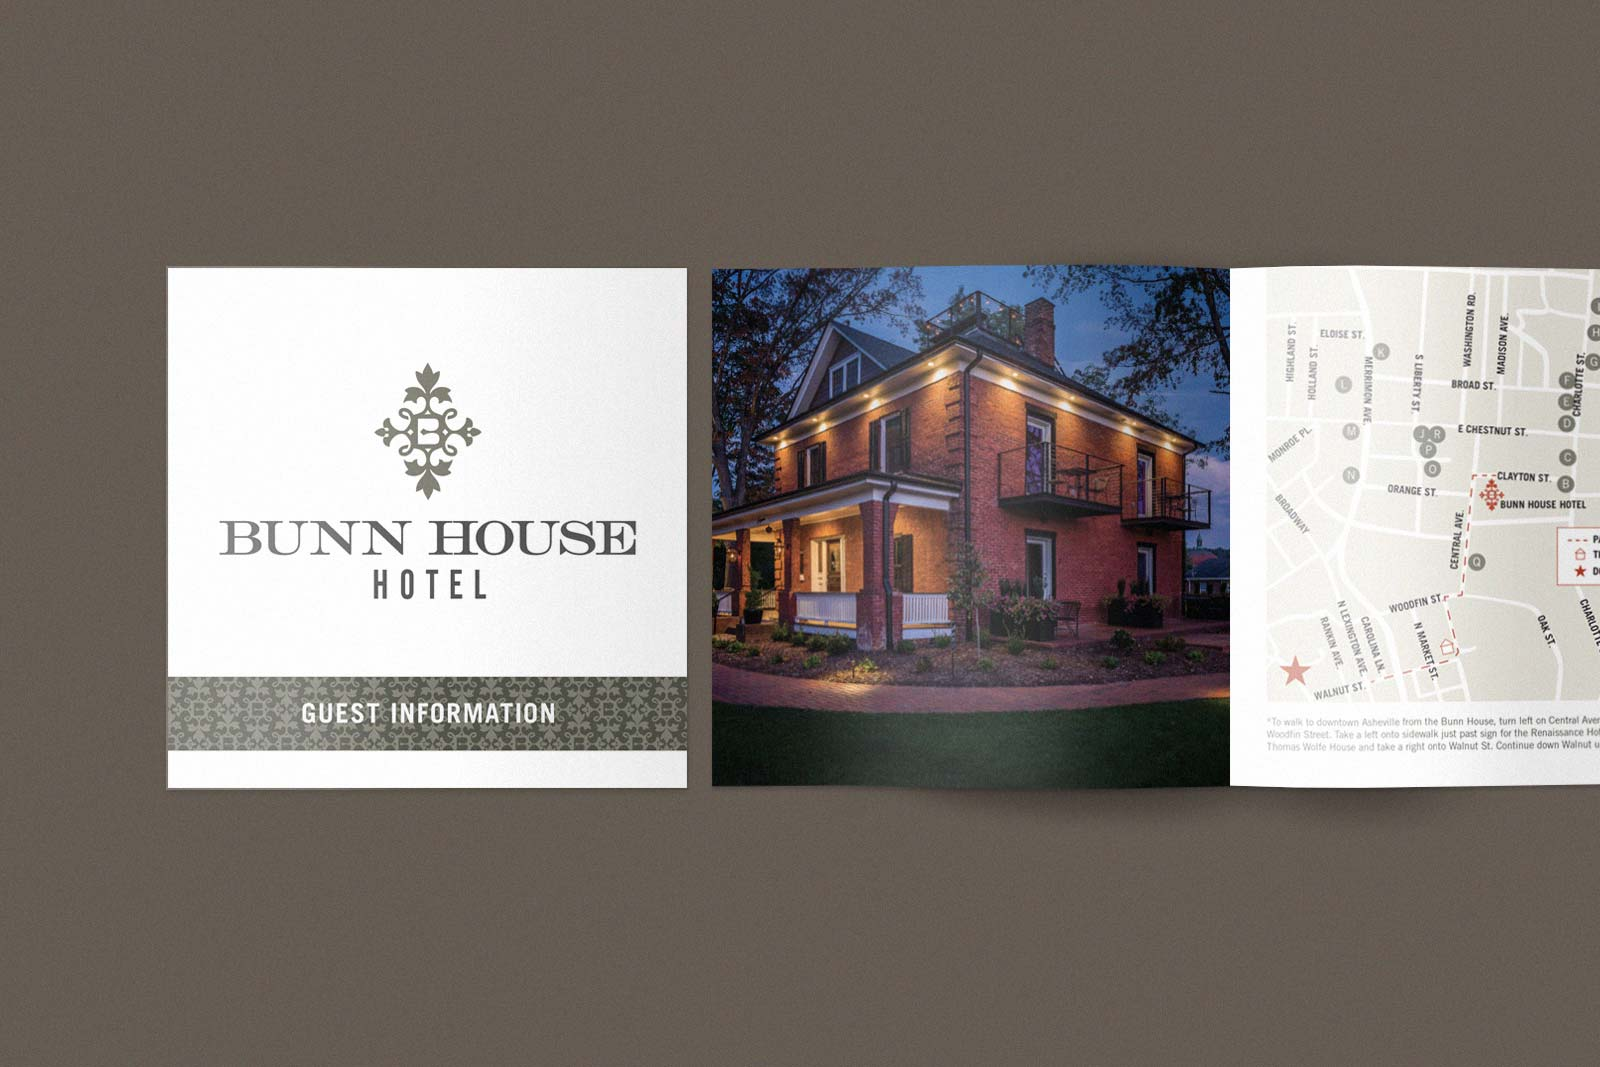 Bunn House Boutique Hotel guest book cover.  on natural paper and opening spread showing the house and an area map.